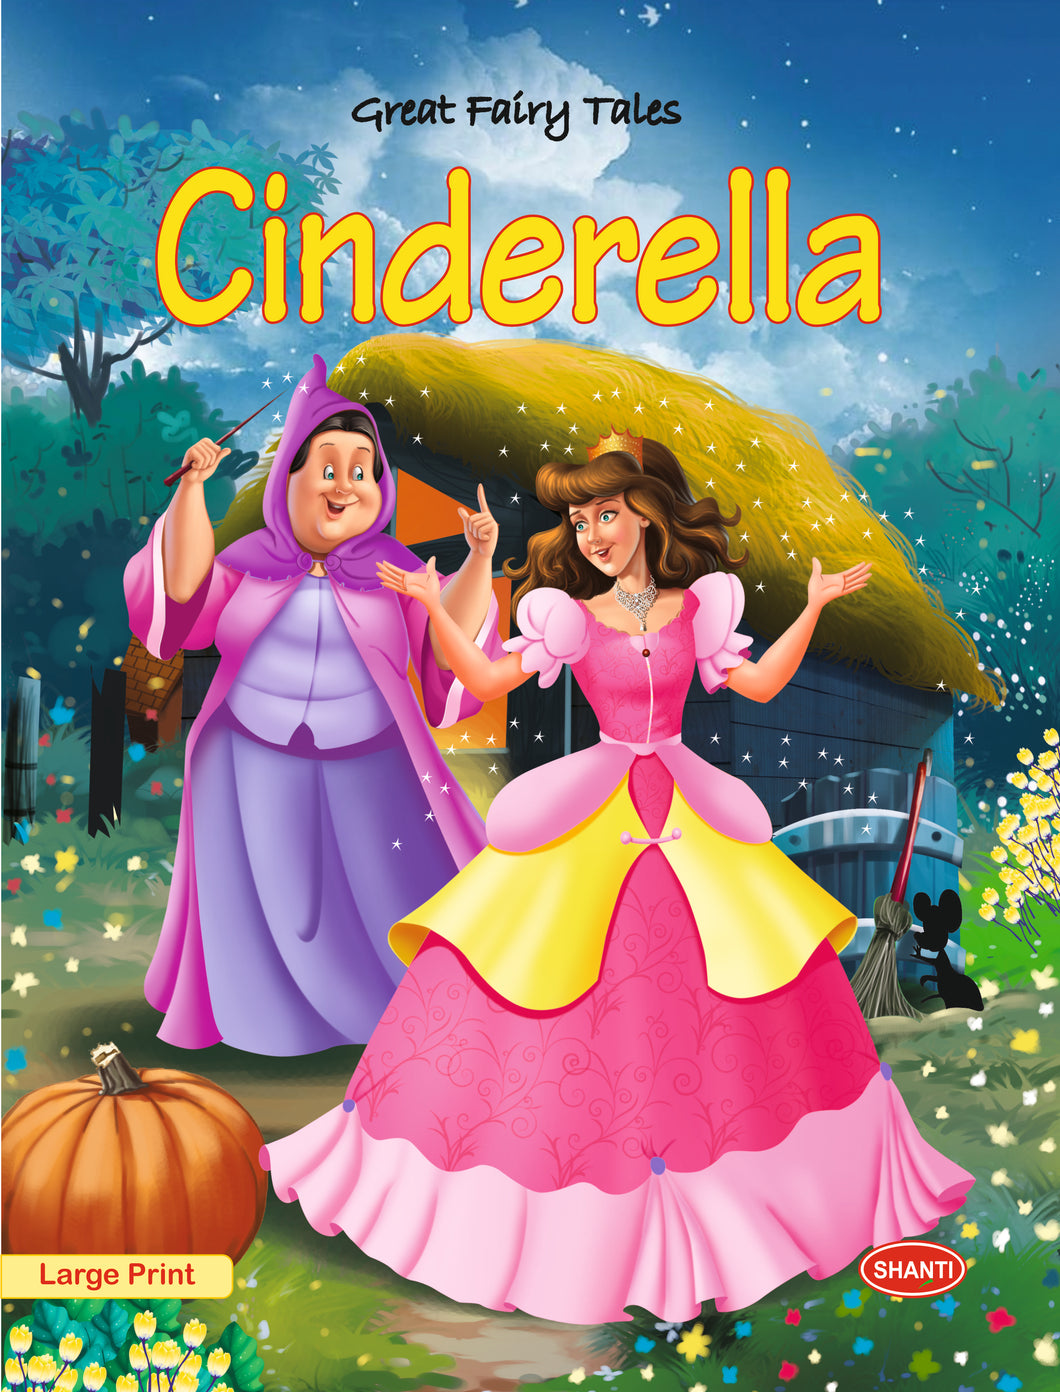 Fairy Tales for Kids-Great Fairy Tales - Cinderella